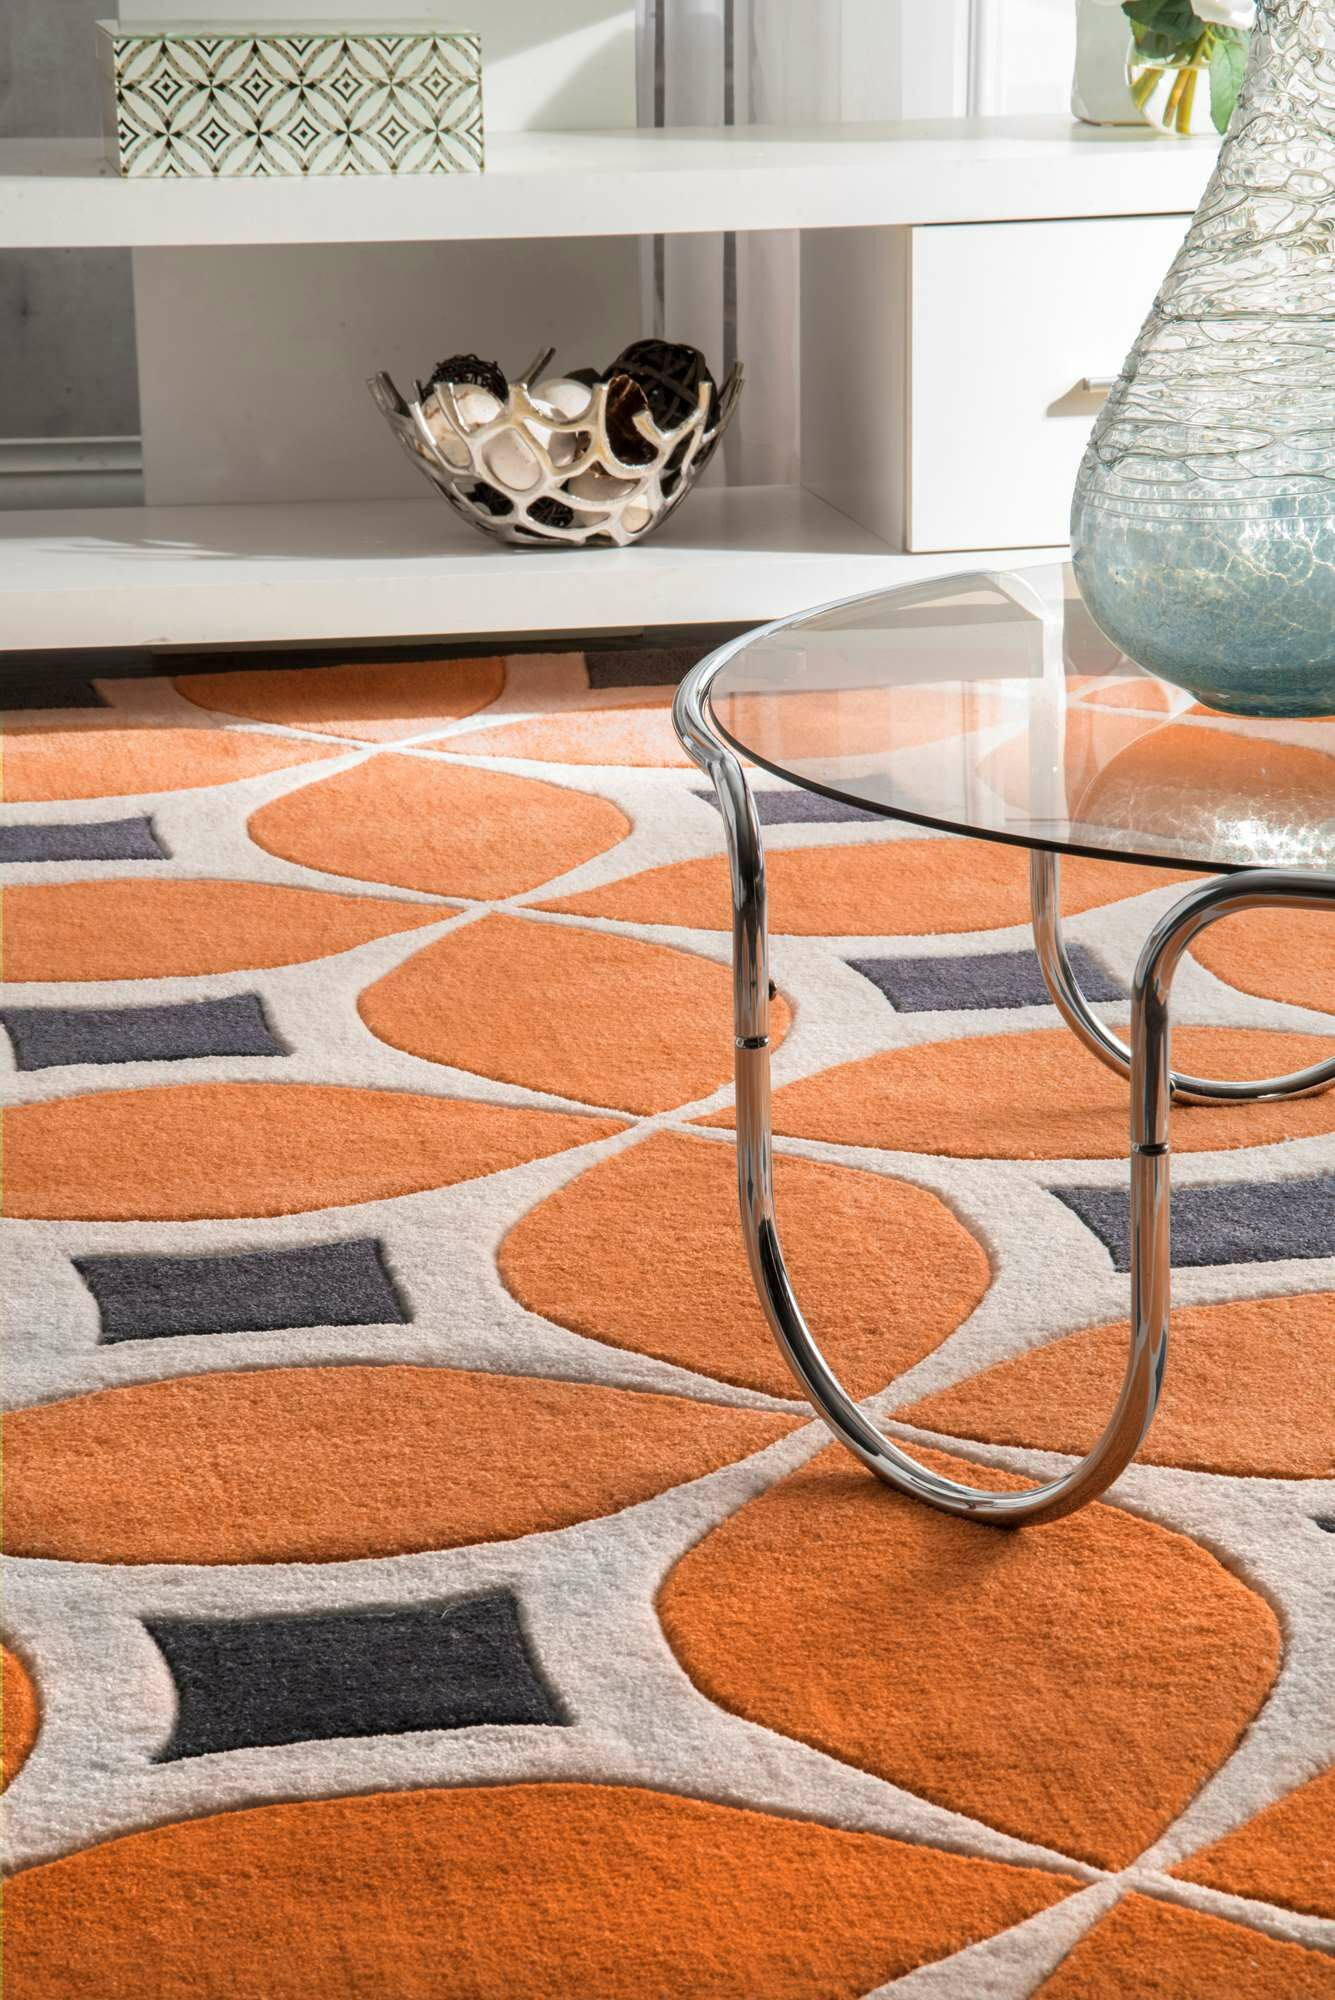 Sorrento Hand Woven Orange Area Rug Rug Size: Rectangle 12' x 15'